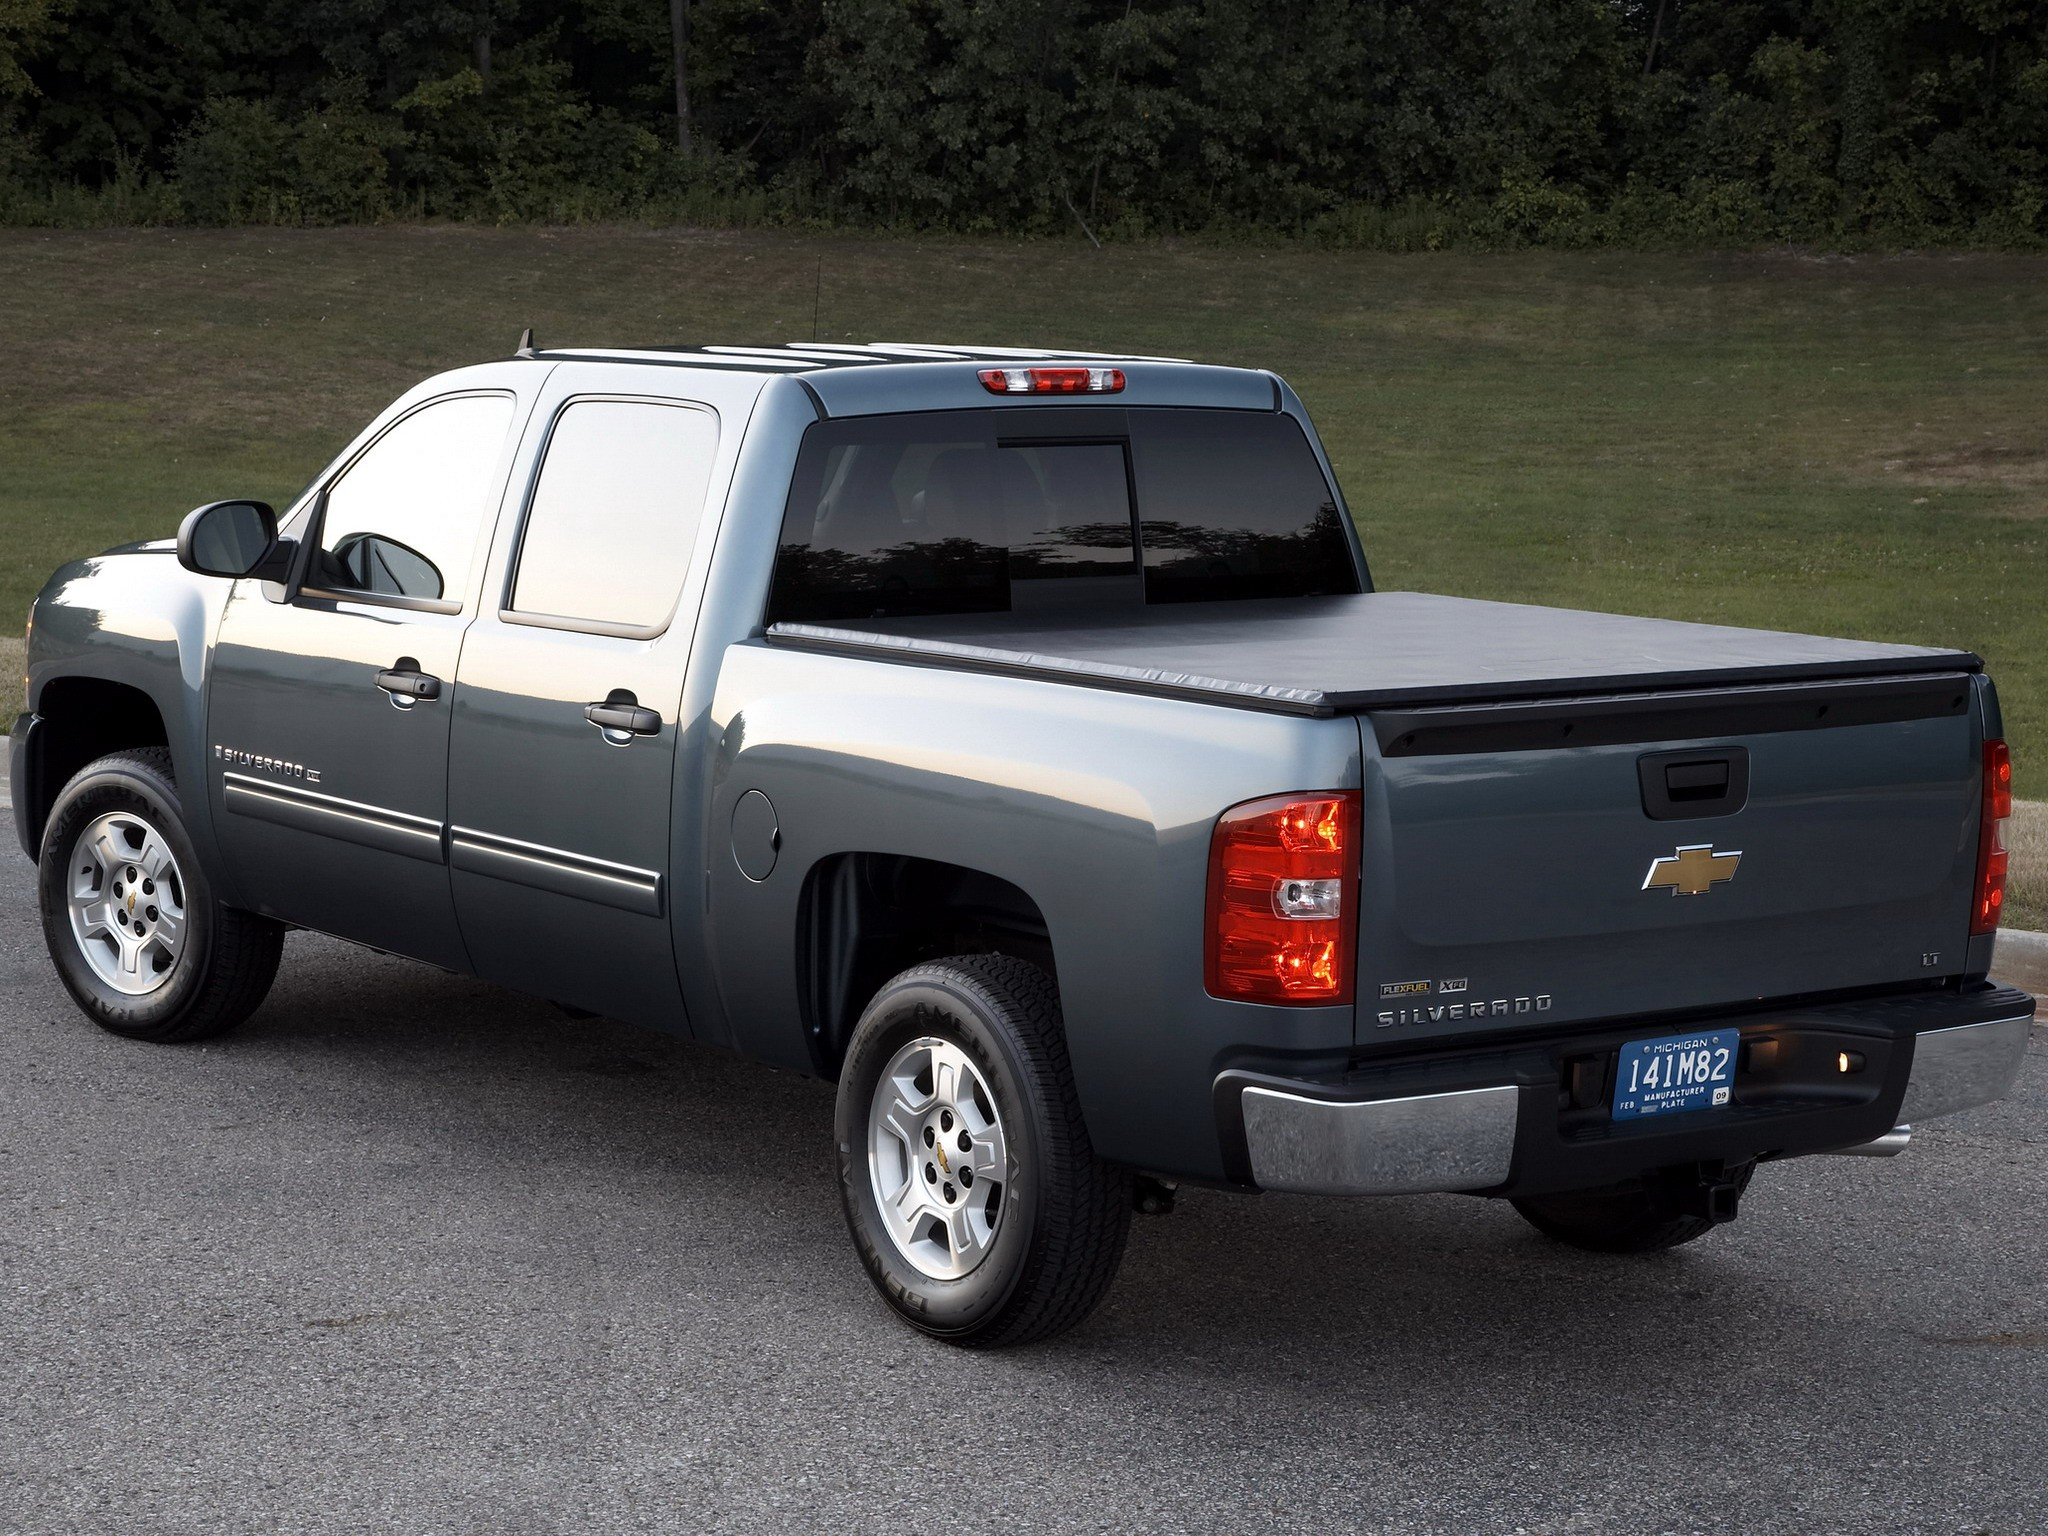 Chevrolet Silverado Crew Cab on Chevrolet 6 Cylinder Truck Engines